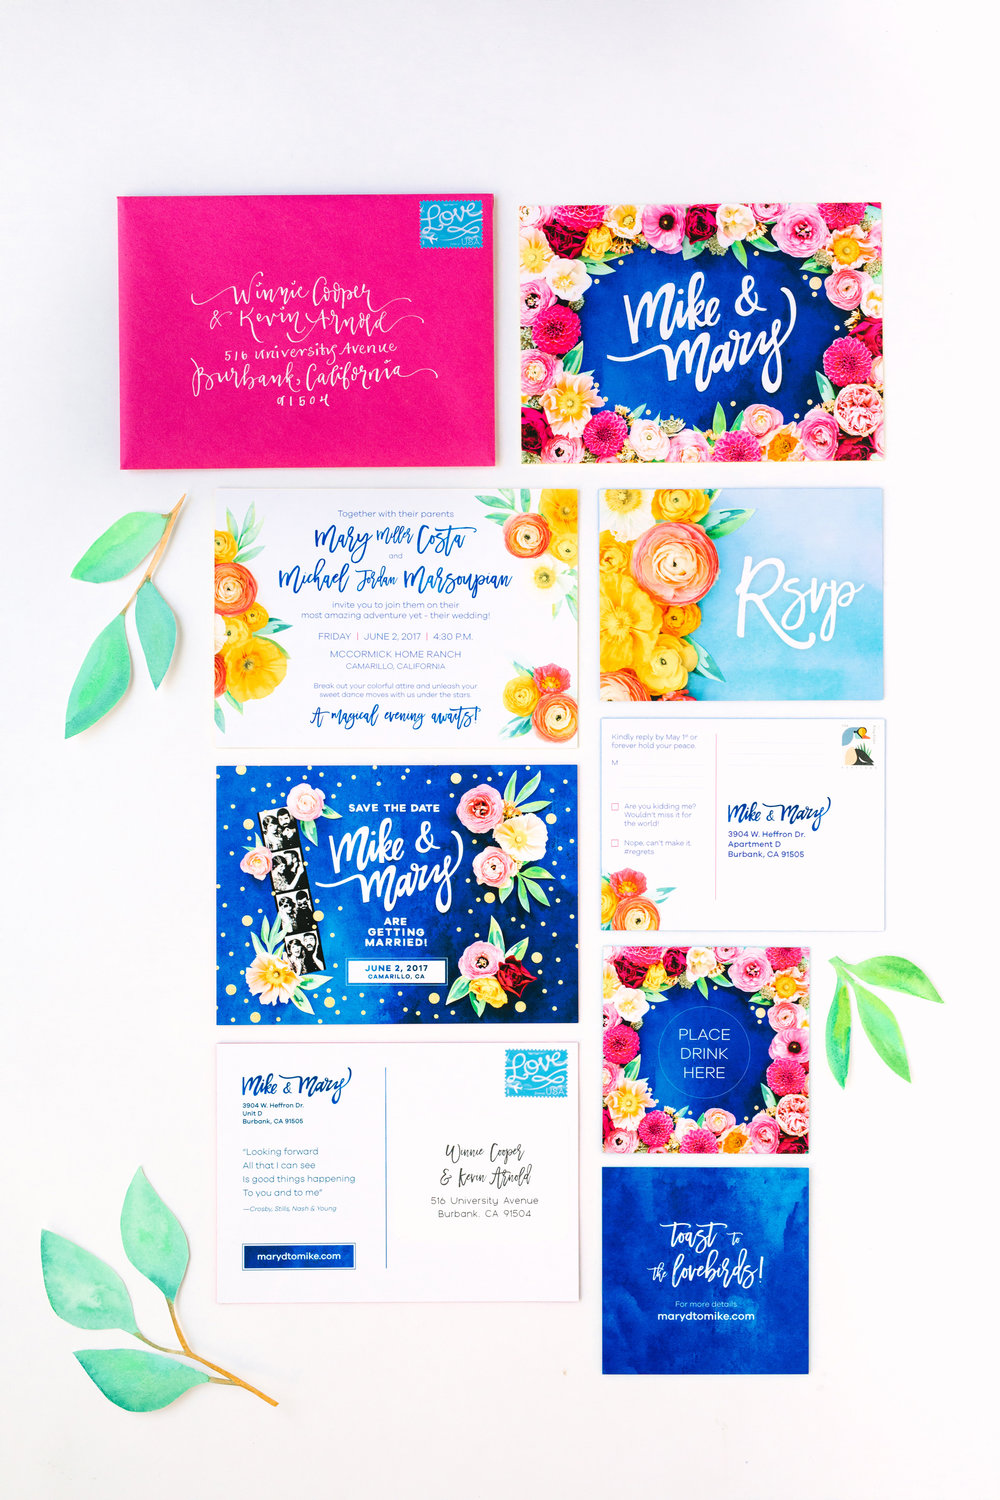 Mike and Mary Wedding Invitation Suite